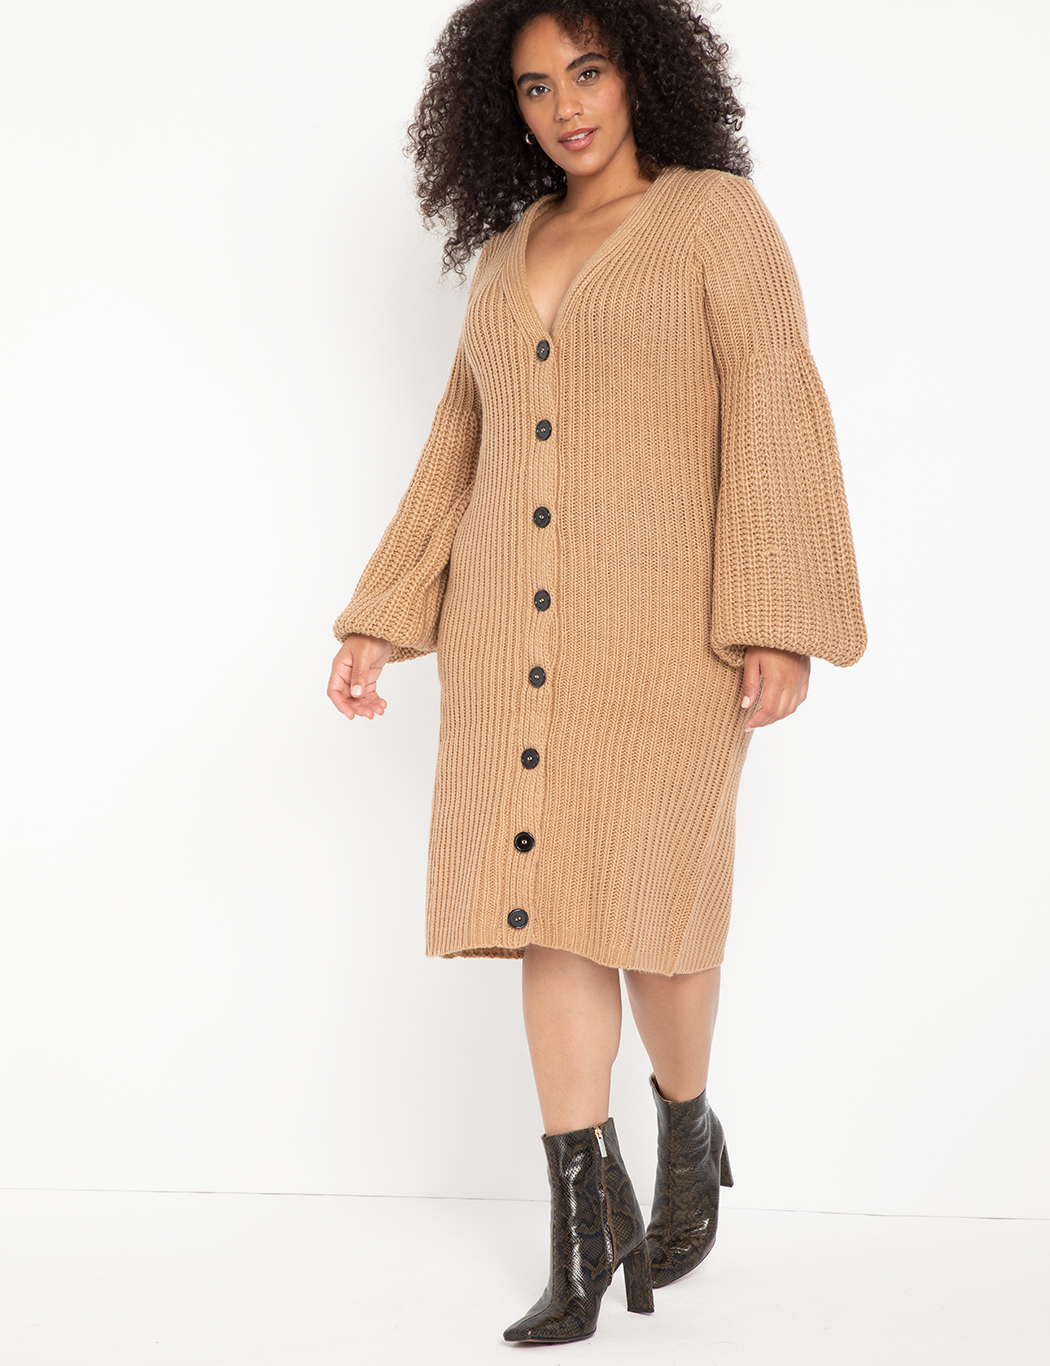 Cardigan Sweater Dress 4